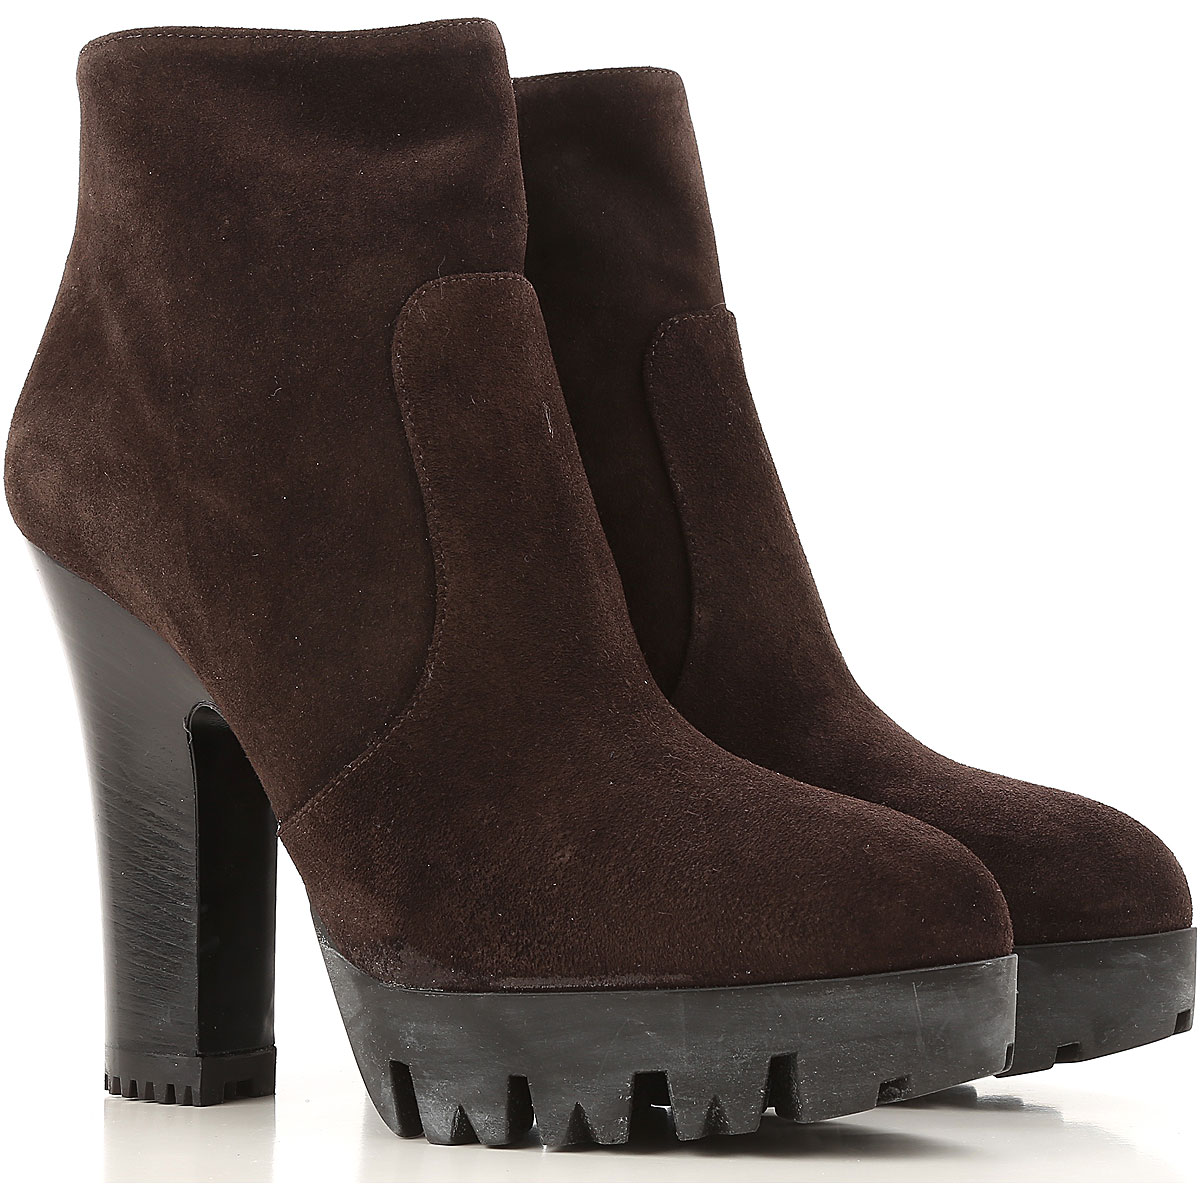 Miu Miu Boots for Women, Booties On Sale in Outlet, Dark Brown, Suede leather, 2019, 10 6.5